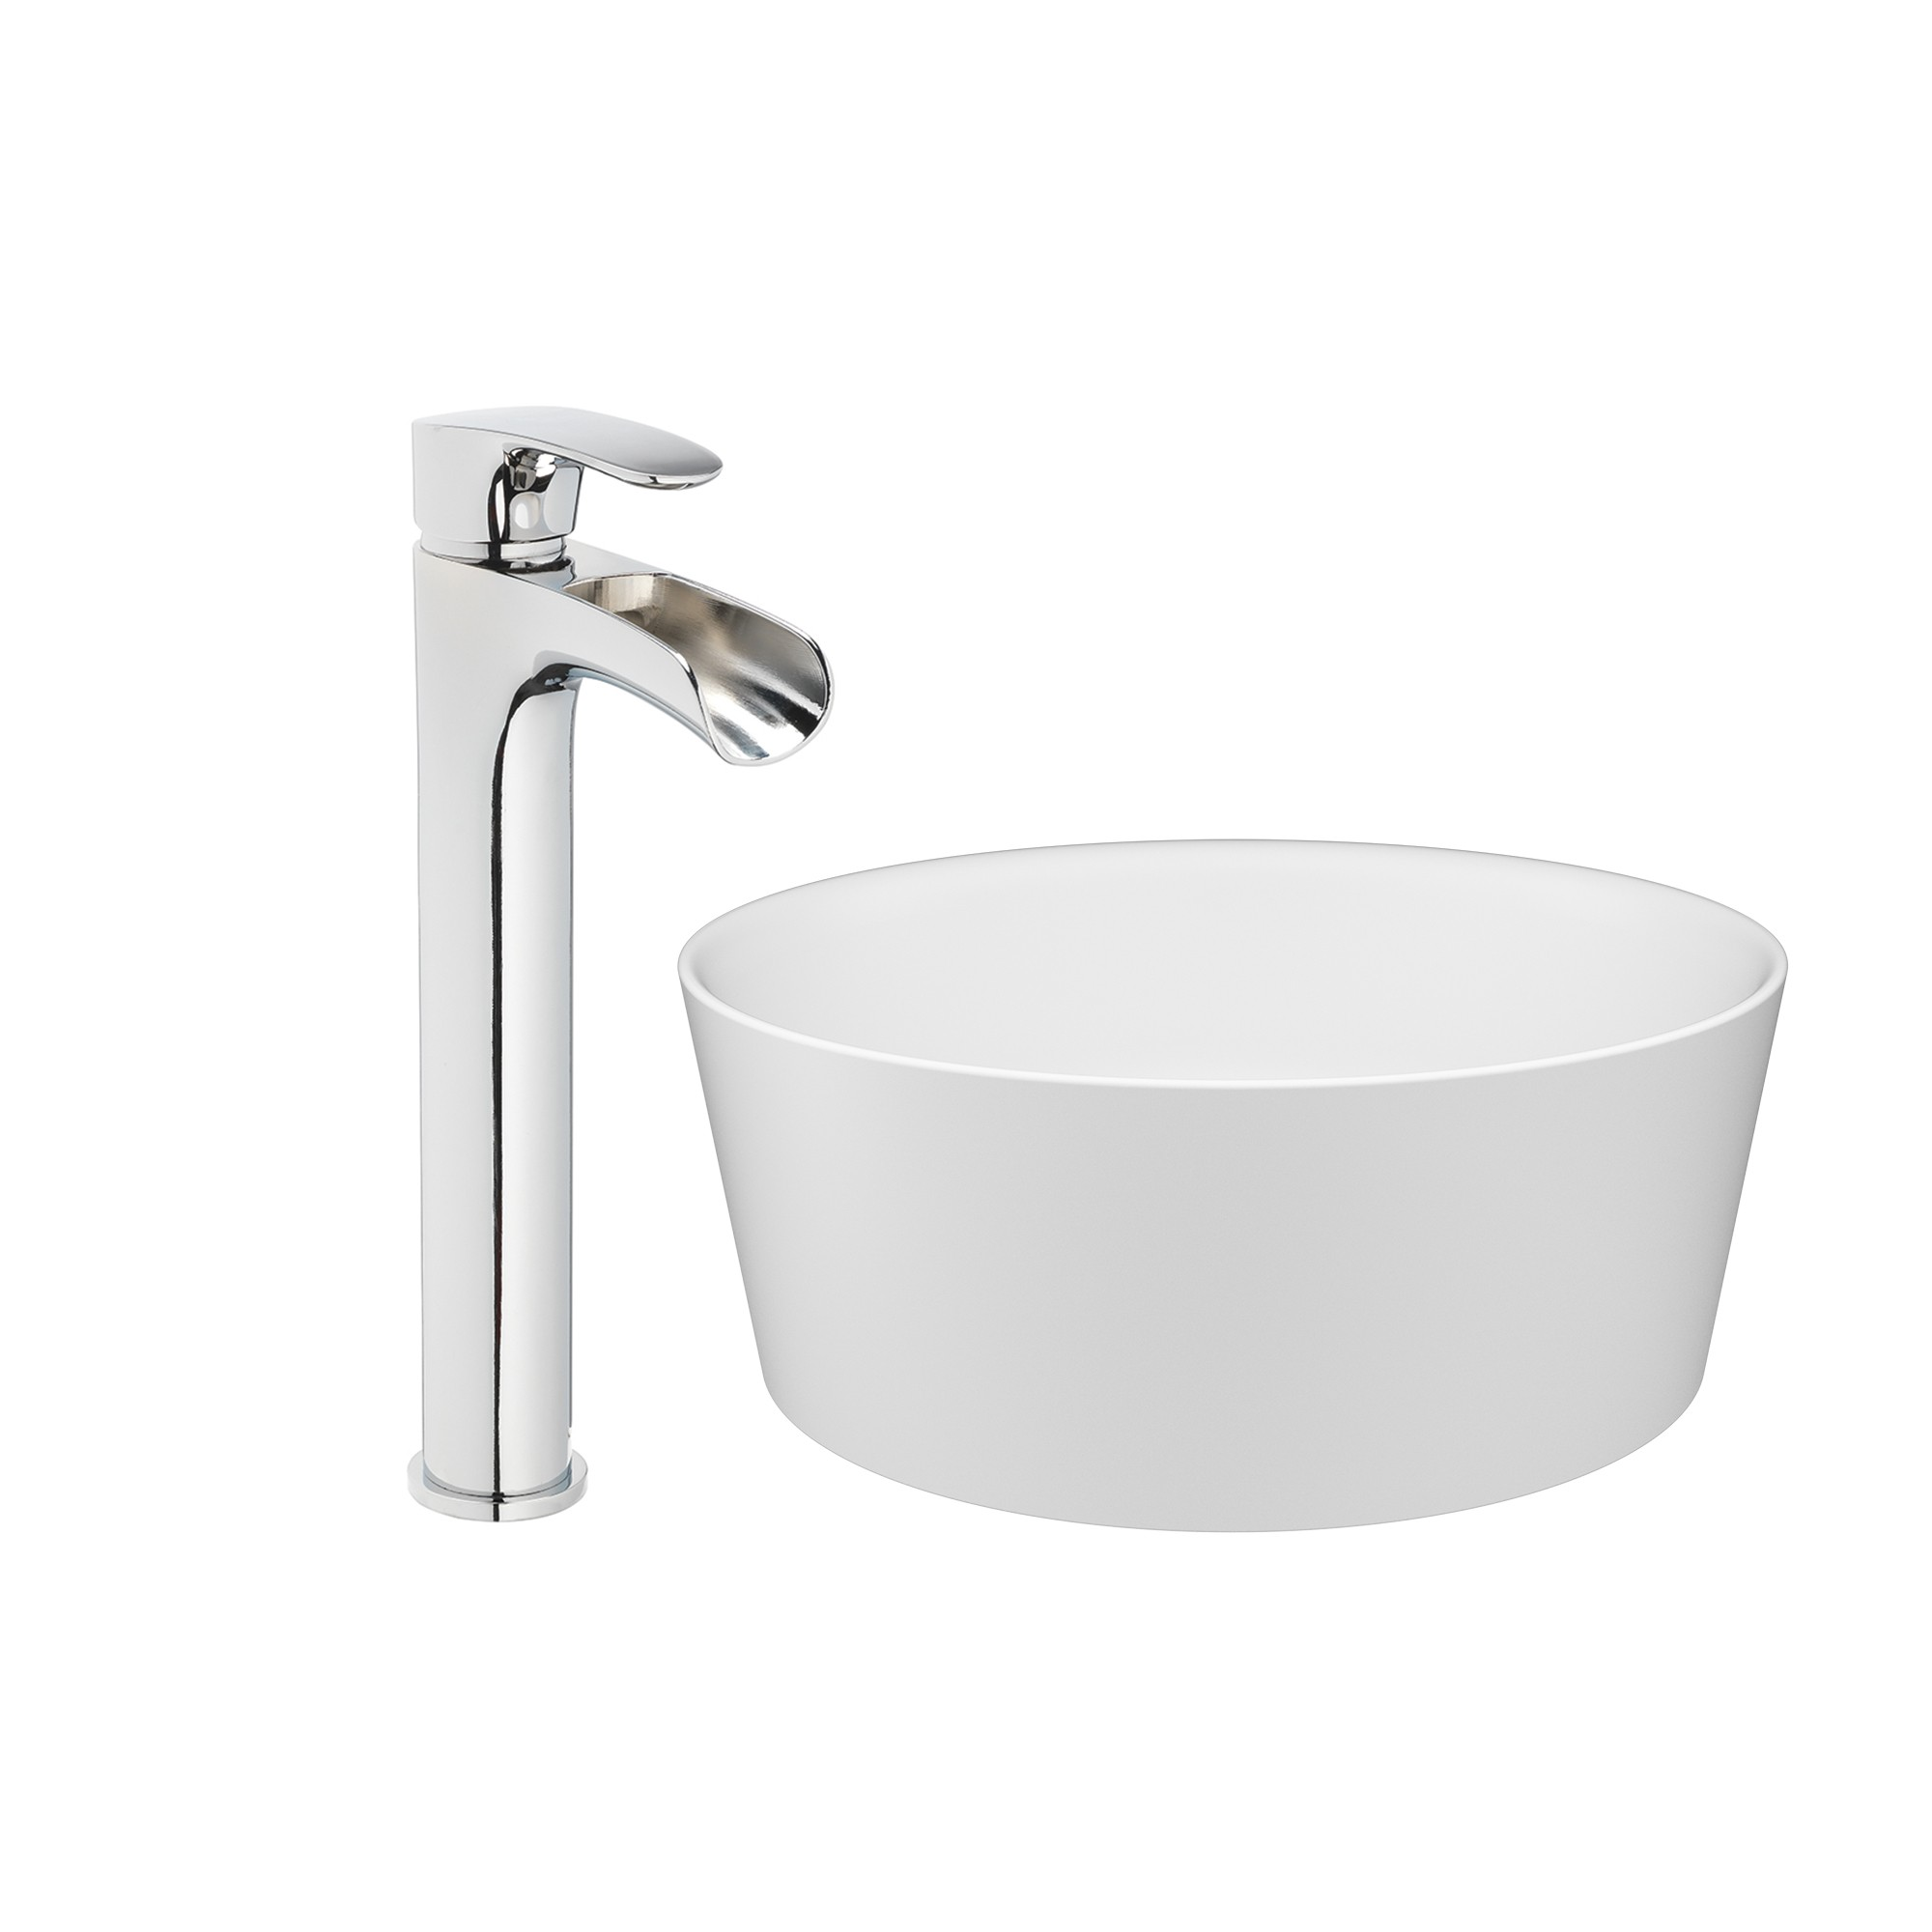 Jacuzzi 15 13 16 Solid Surface Vessel Bathroom Sink Round Basin White Gloss With Vessel Filler Faucet And Pop Drain Included Jacuzzi Com Jacuzzi